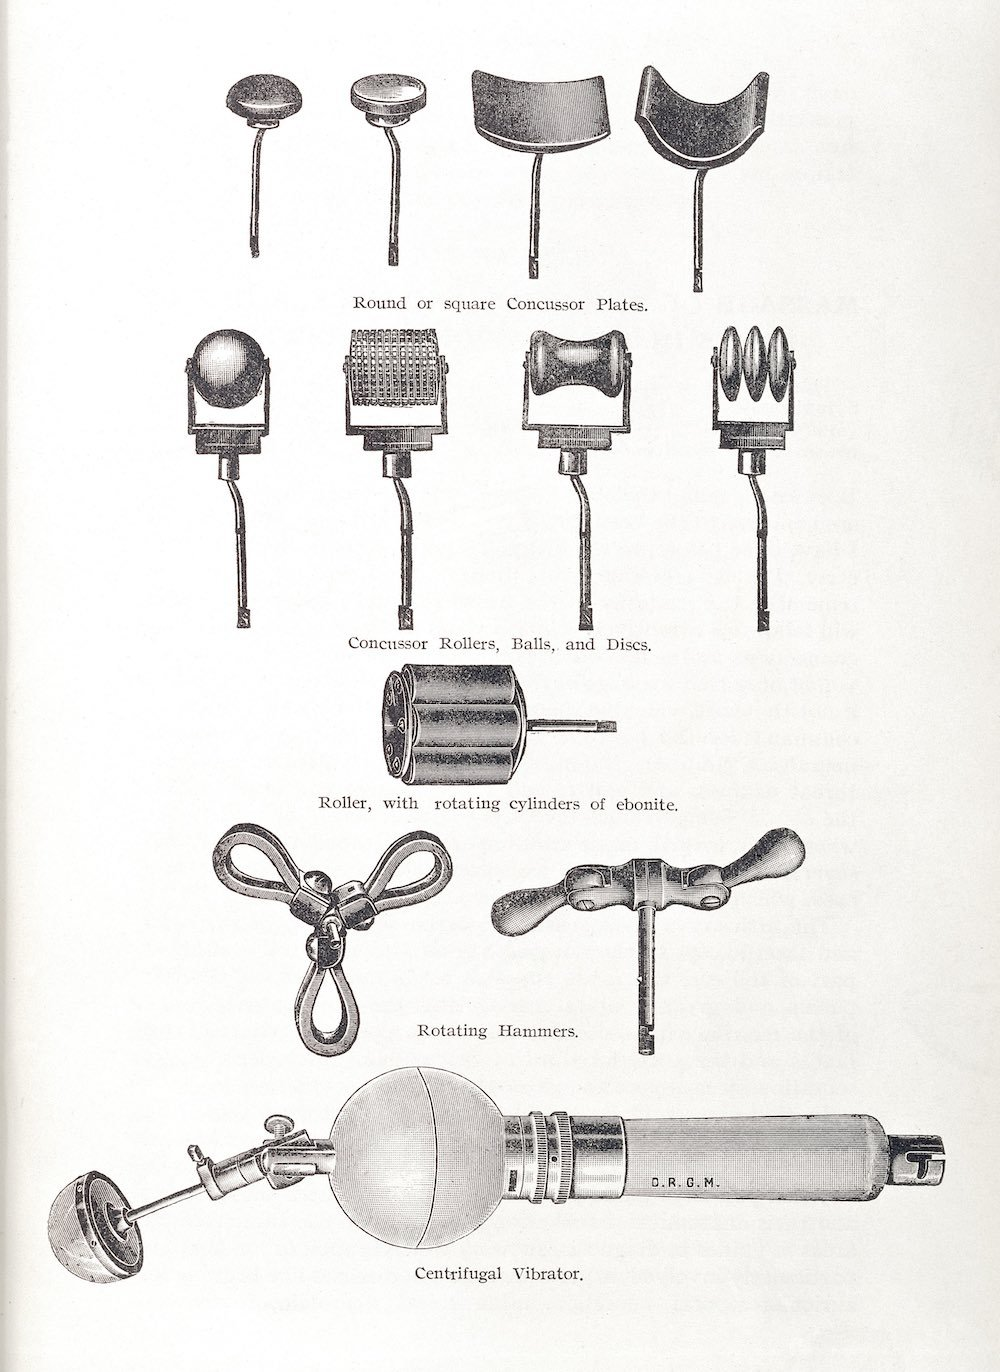 L0034214 Illustration showing various instruments Credit: Wellcome Library, London. Wellcome Images images@wellcome.ac.uk http://wellcomeimages.org Illustration showing various instruments used in vibratory massage. Round or square Concussor Plates, Concussor Rollers, Balls and Discs, Roller with rotating cylinders and ebonite, Rotating hammers and Centrifugal Vibrator Illustration Lectures on Massage & Elecricity in the Treatment of Disease Thomas Stretch Dowse Published: 1906 Copyrighted work available under Creative Commons Attribution only licence CC BY 4.0 http://creativecommons.org/licenses/by/4.0/